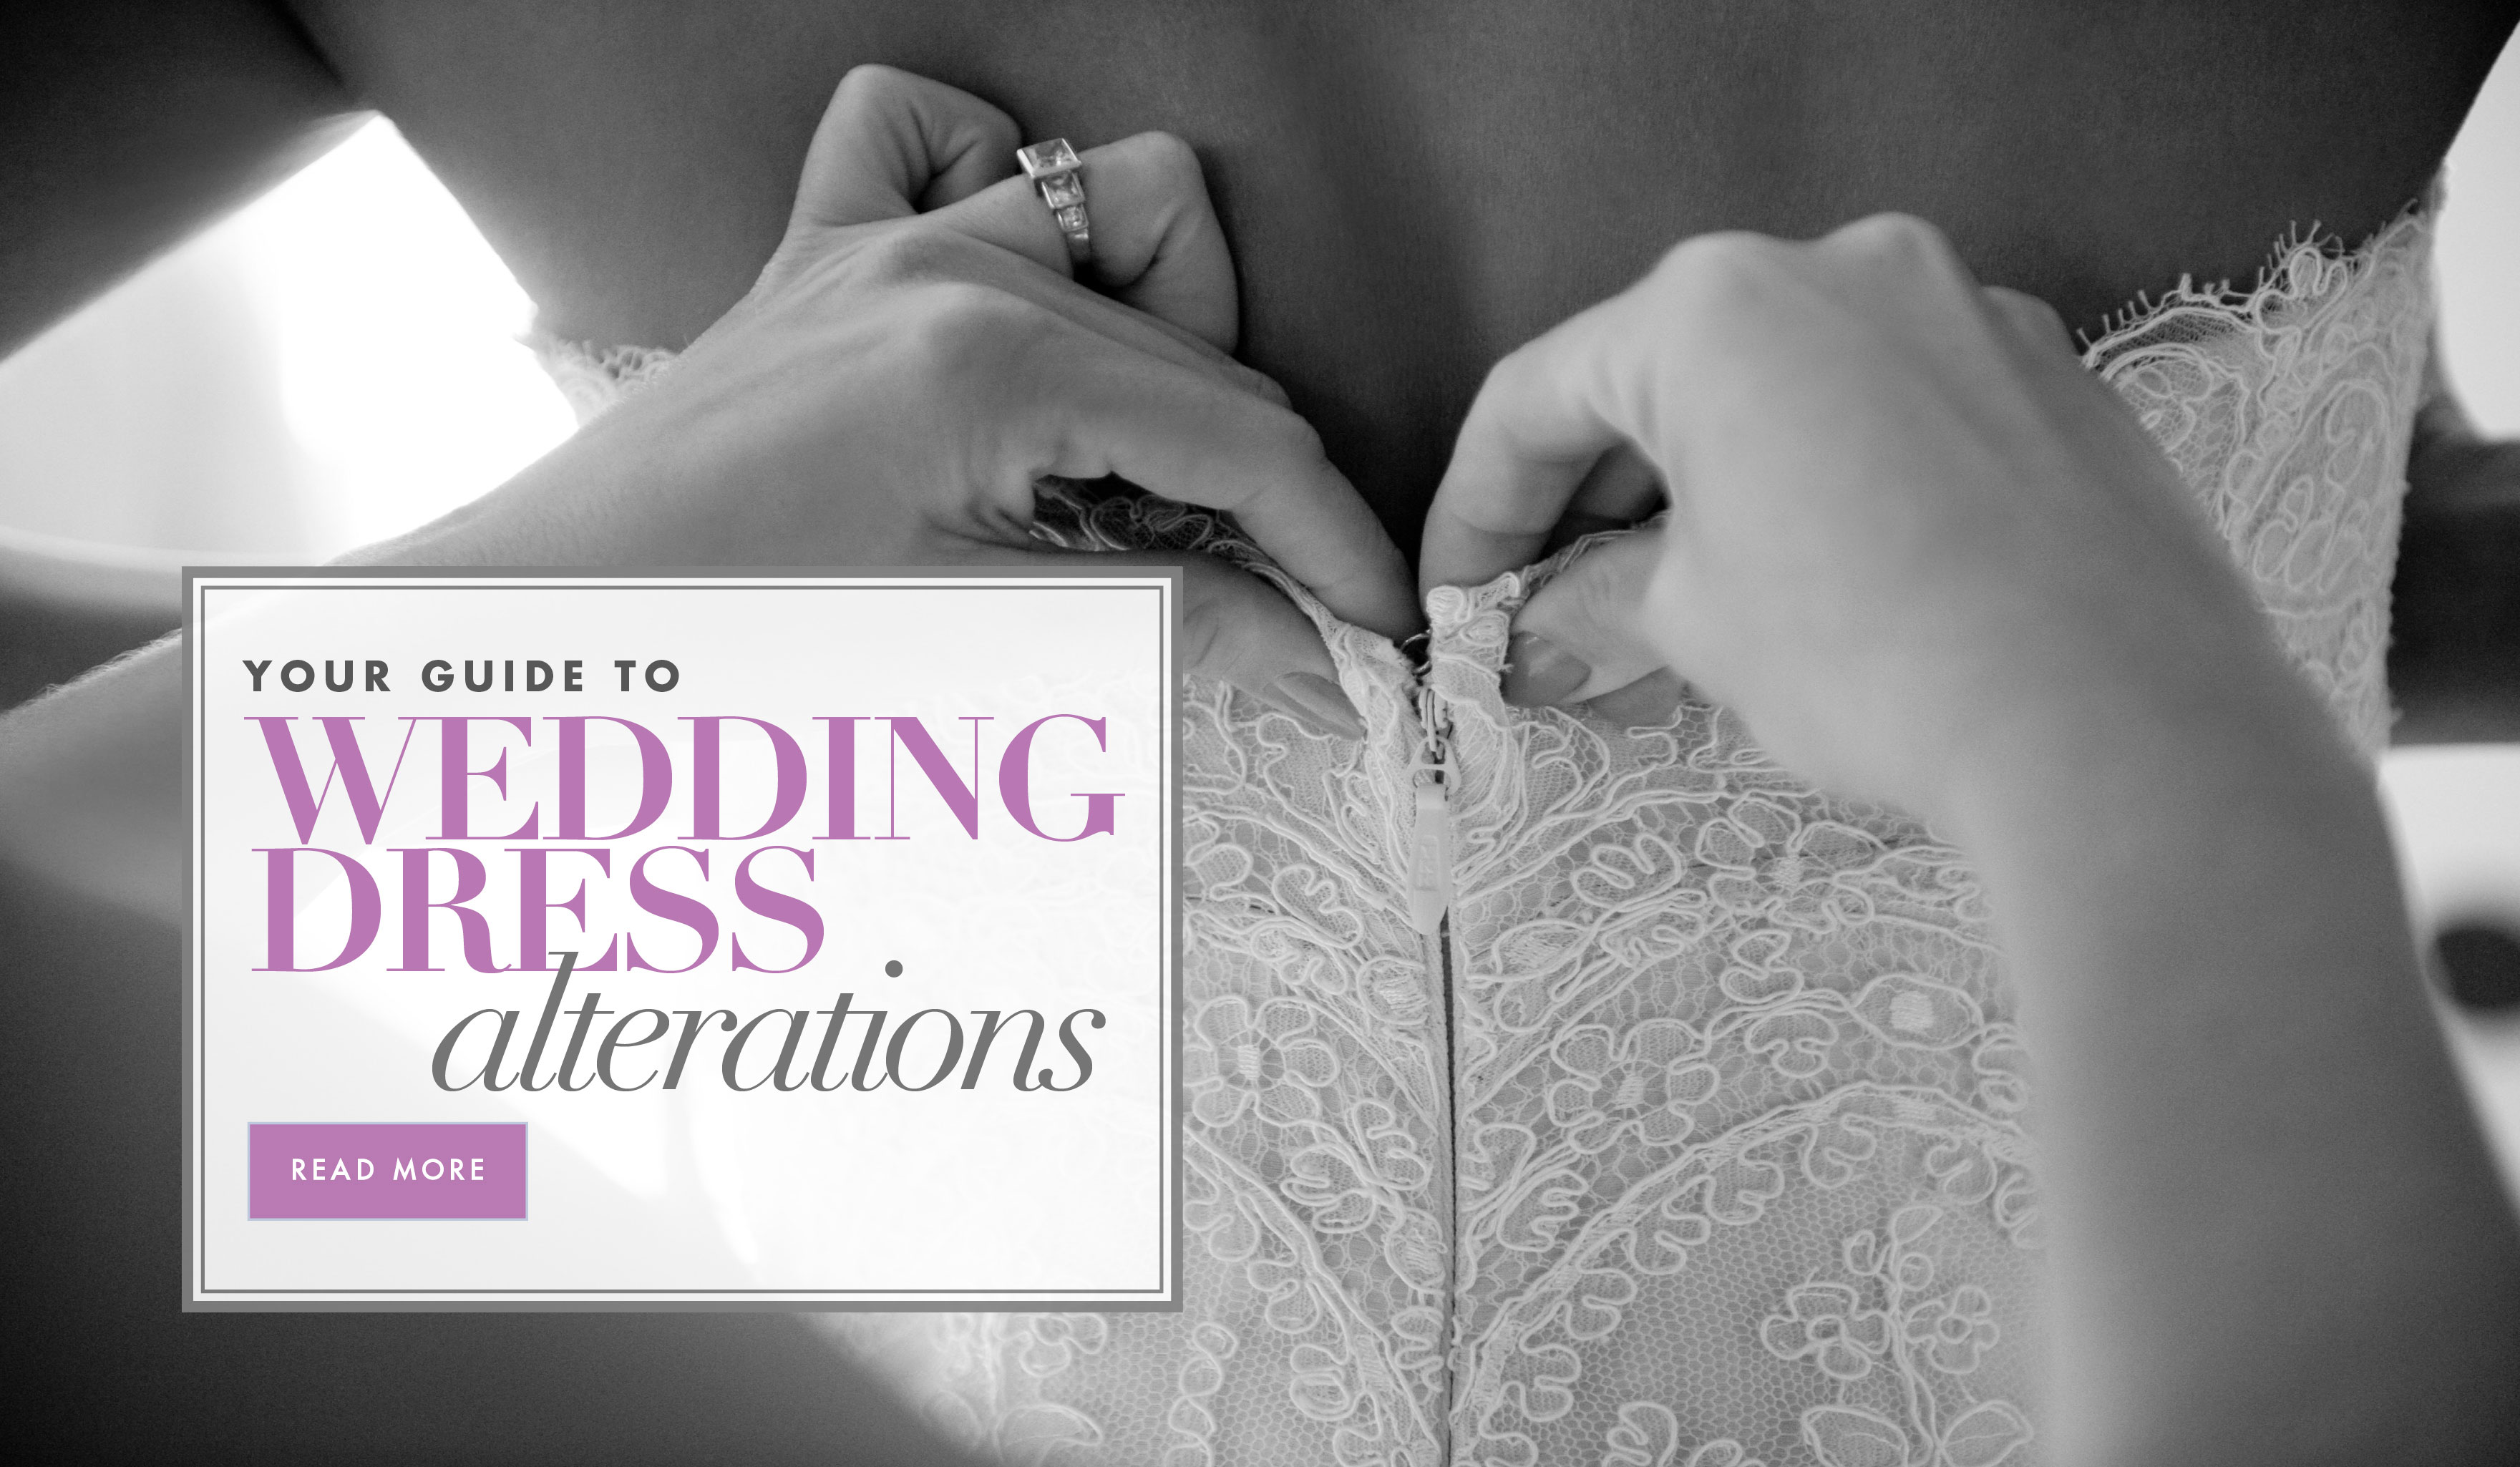 Wedding Dress Alterations What You Need To Know